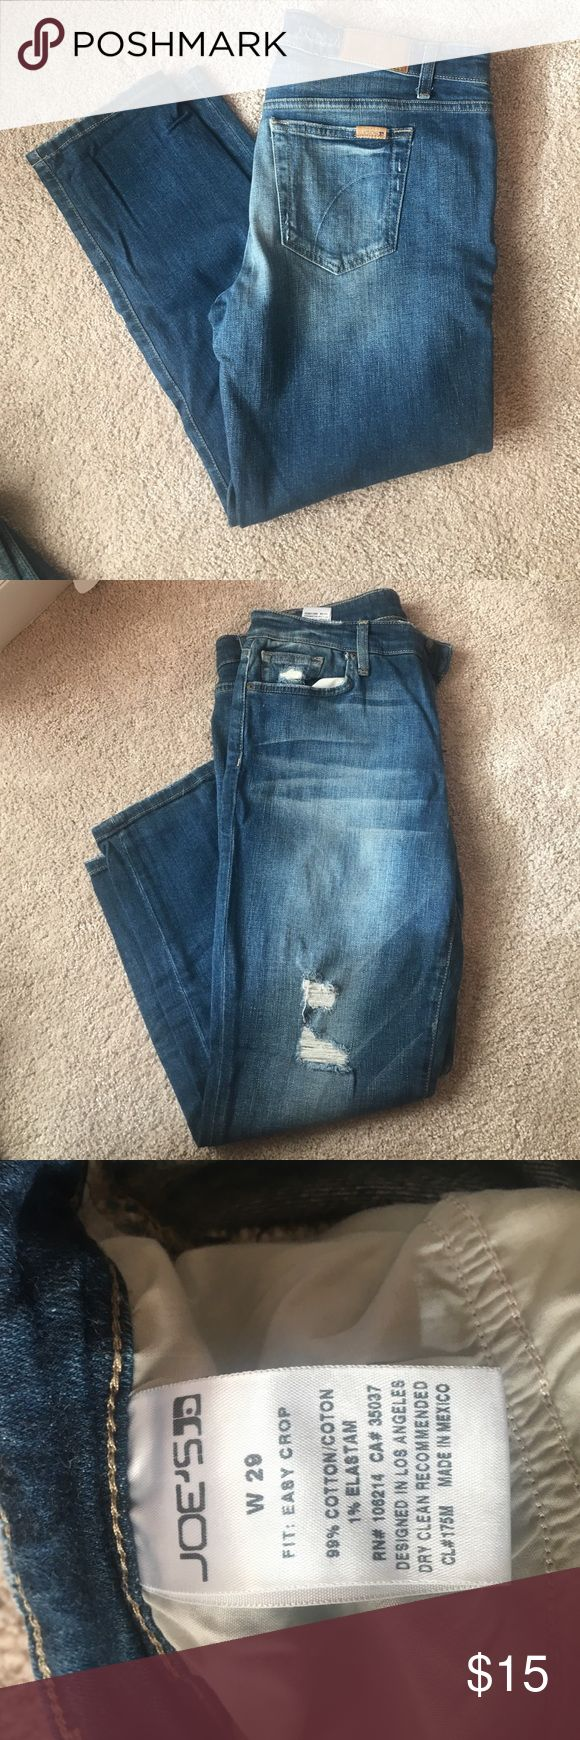 Women's Cropped Jeans Cropped Blue Jeans, Distressed Front, Size W29, Fit: Easy Crop, Great Condition Joe's Jeans Jeans Ankle & Cropped